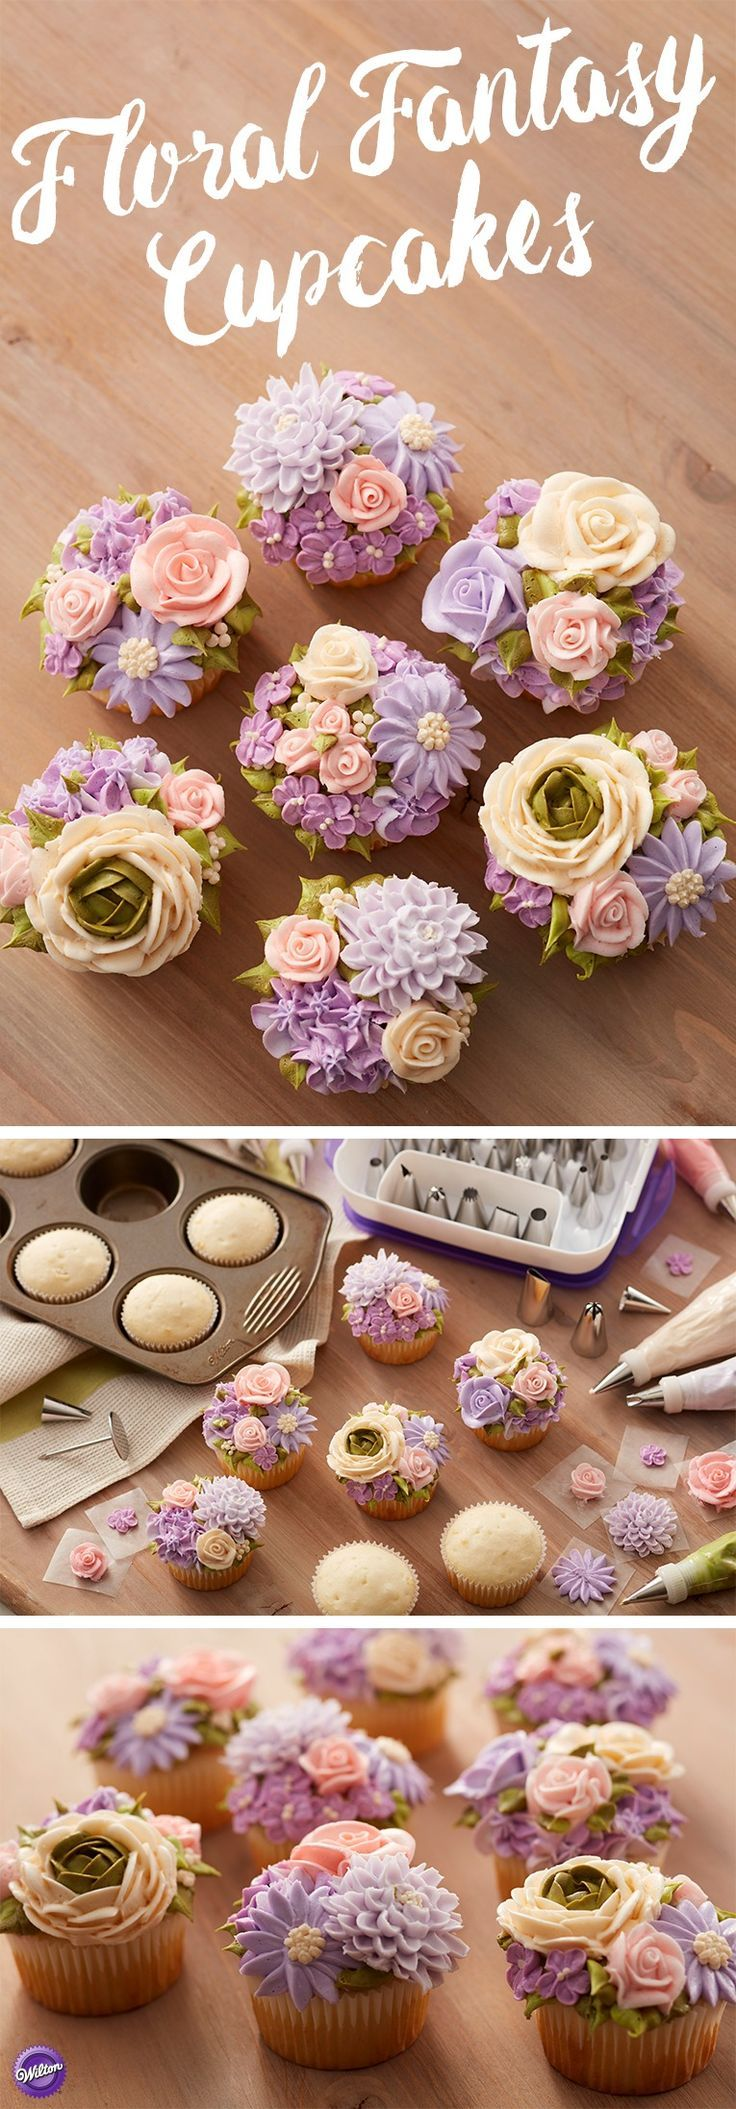 These amazing Floral Fantasy Mother's Day Cupcakes look like they're straight out of the garden! Blooming with stunning buttercream roses, daisies, mums and more, these Mother's Day treats are sure to make mom's day. Featuring soft pink, ivory and violet flowers, these Mother's Day cupcakes would also be great for a wedding shower or spring brunch. Use the Master Tip Set to create this lovely garden of pastel florals.